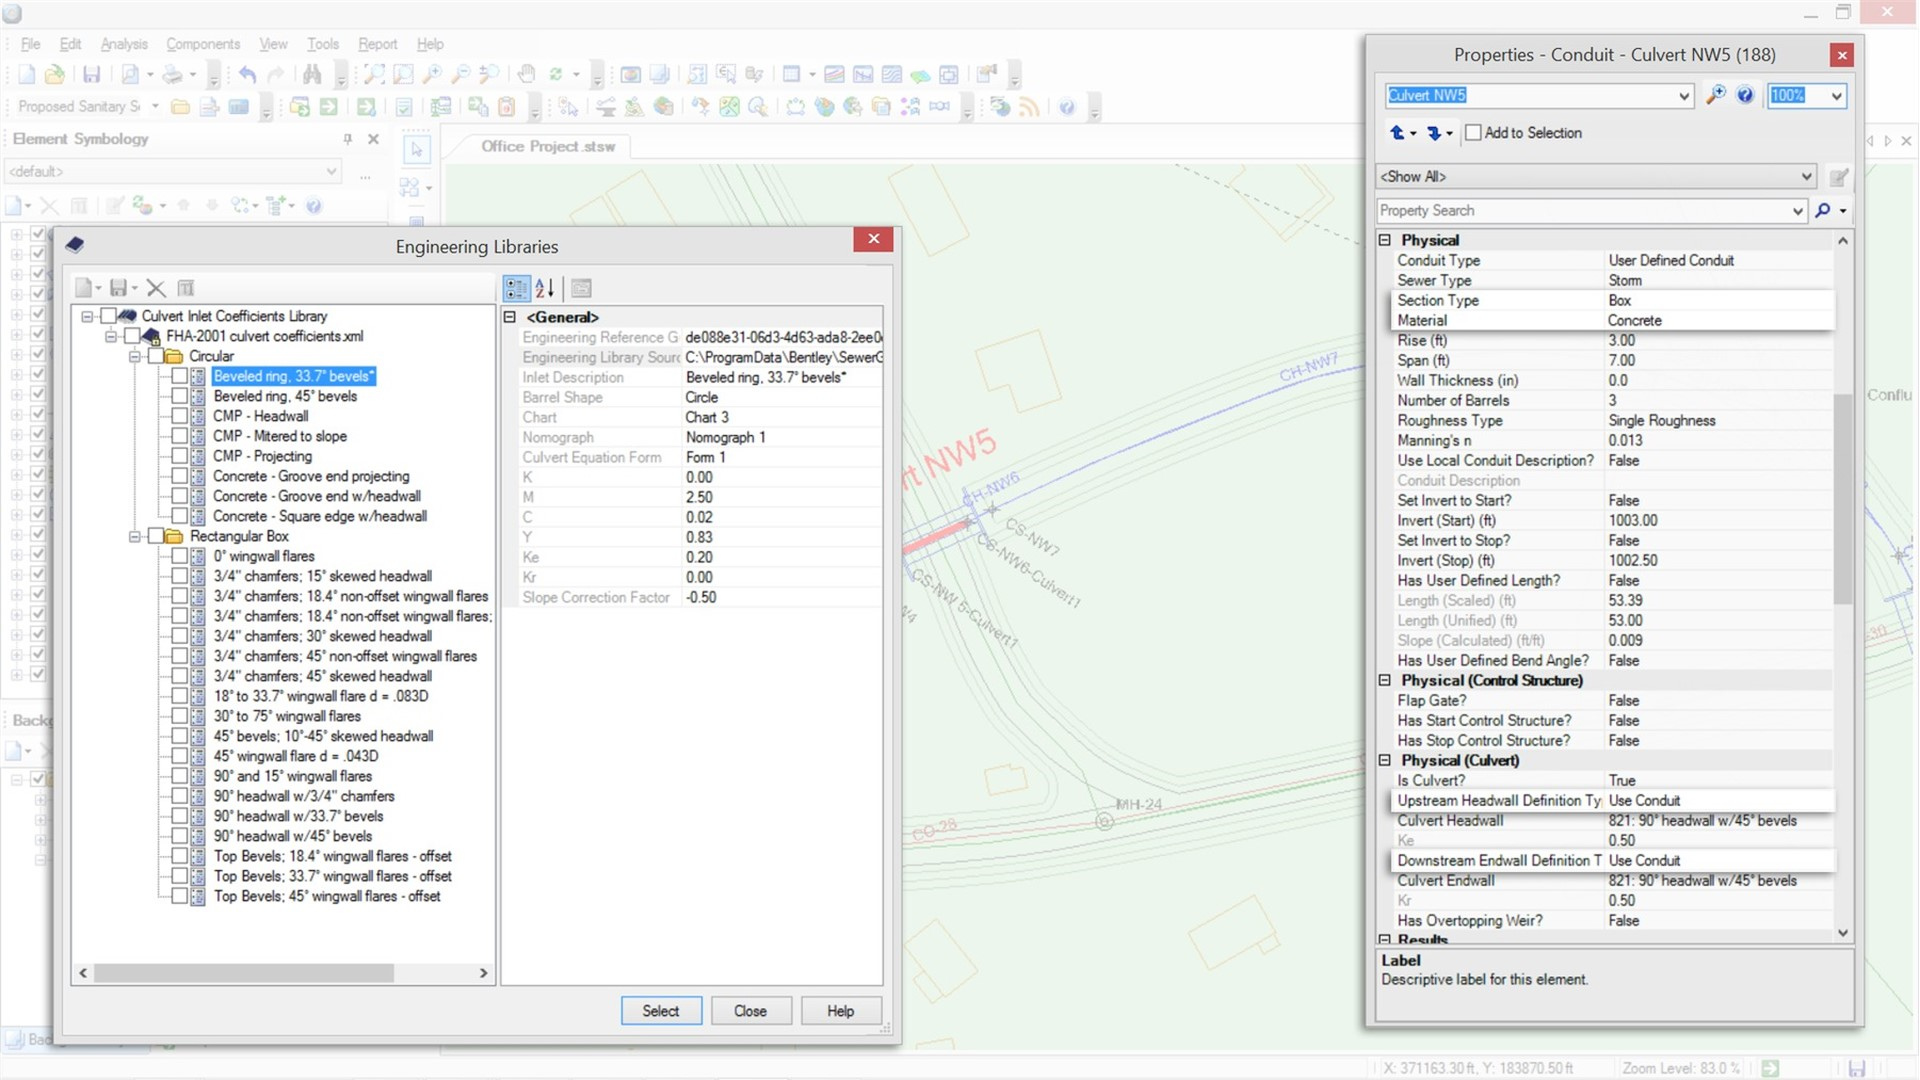 Culvert Design and Hydraulics Analysis Software - Bentley OpenFlows